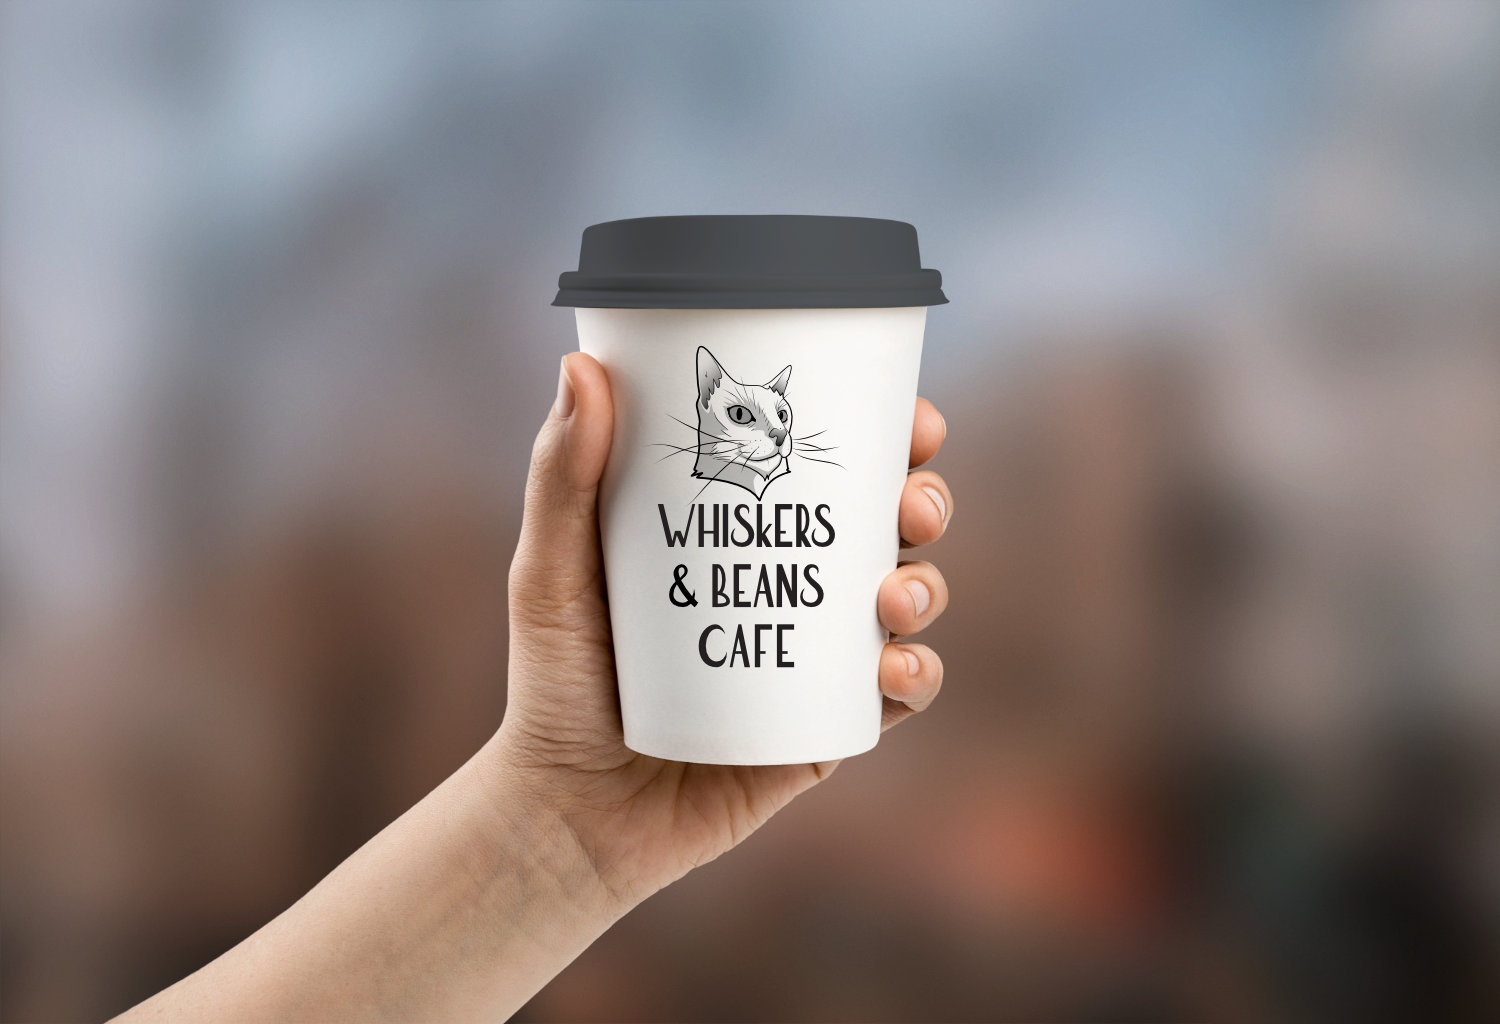 Whiskers & Beans Cafe coffee cup mockup